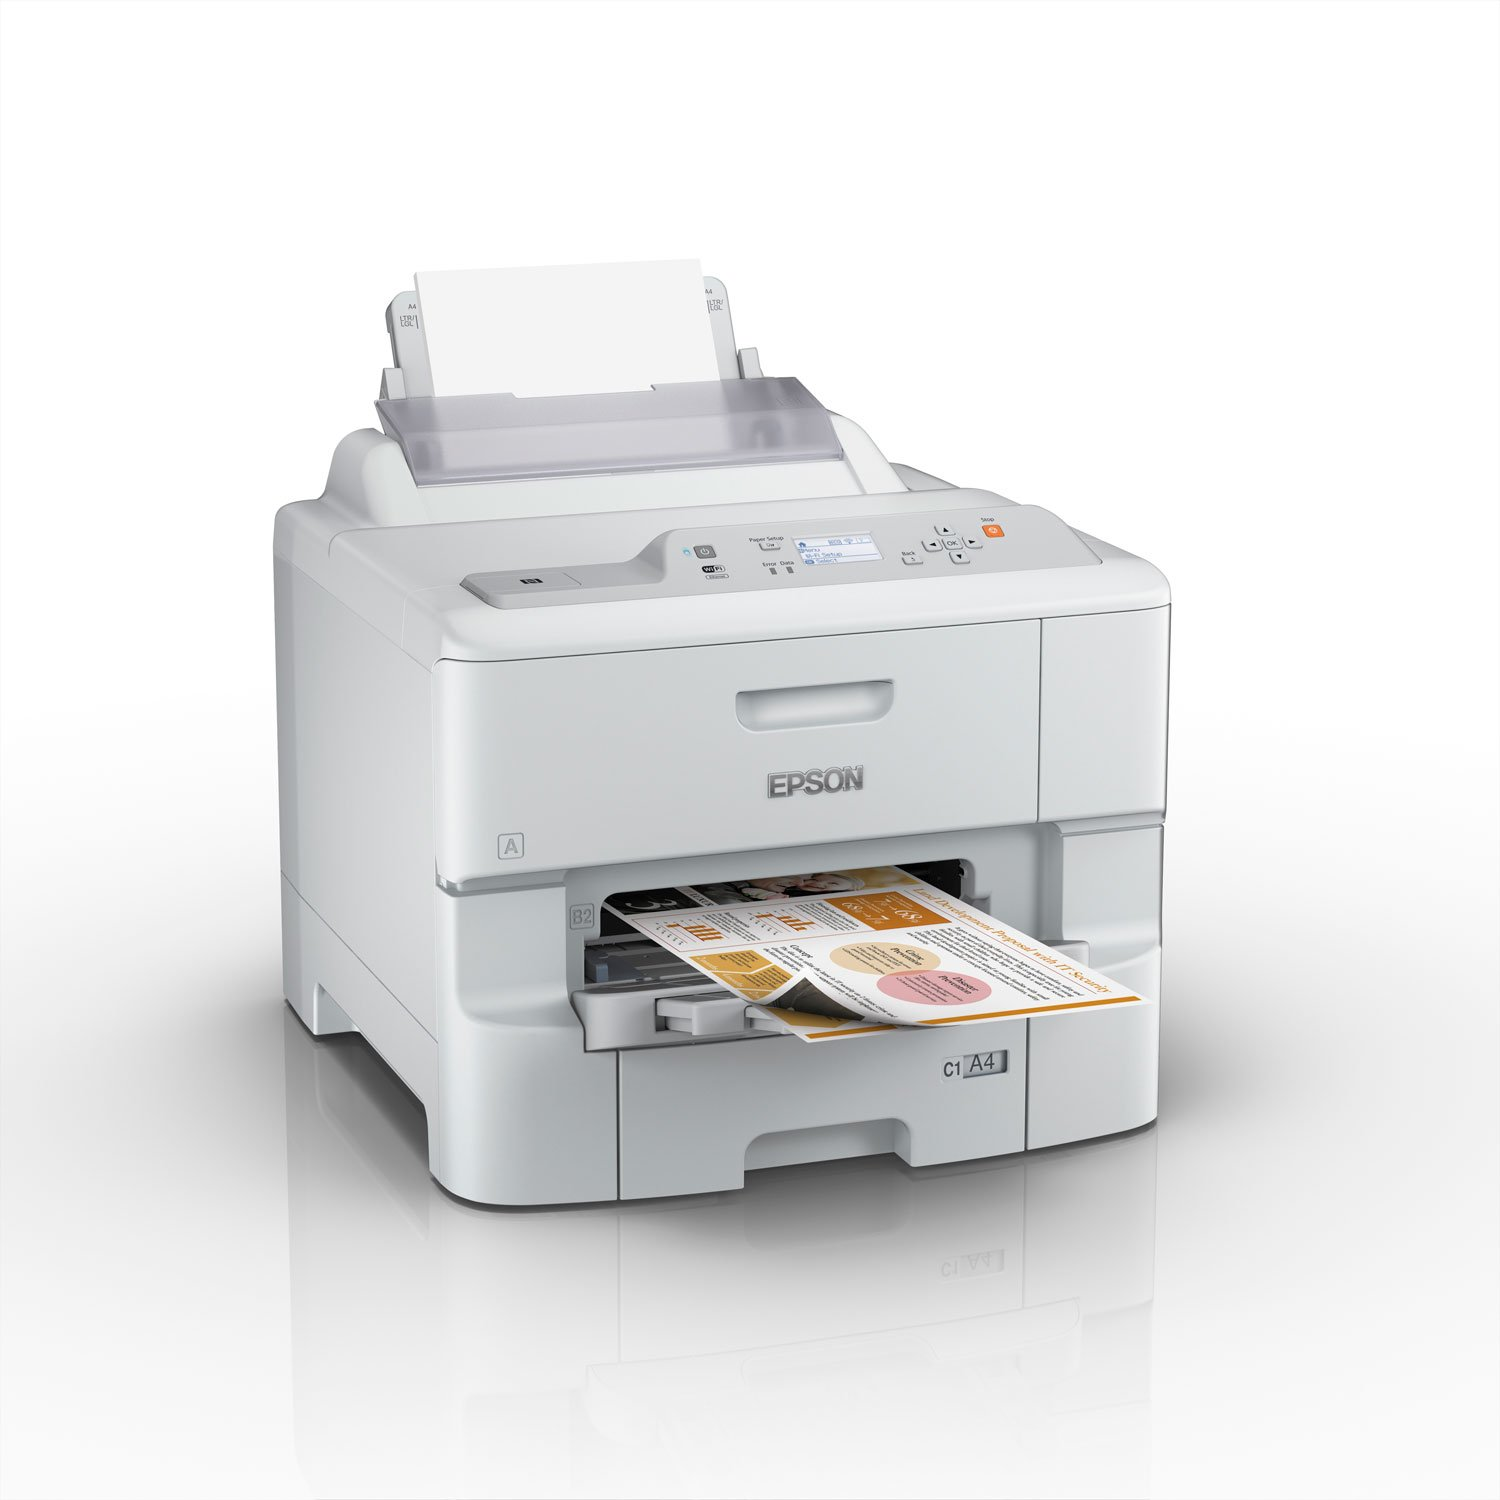 Epson WorkForce Pro WF-6090DW (C11CD47301) - Achat / Vente Imprimante sur Cybertek.fr - 2